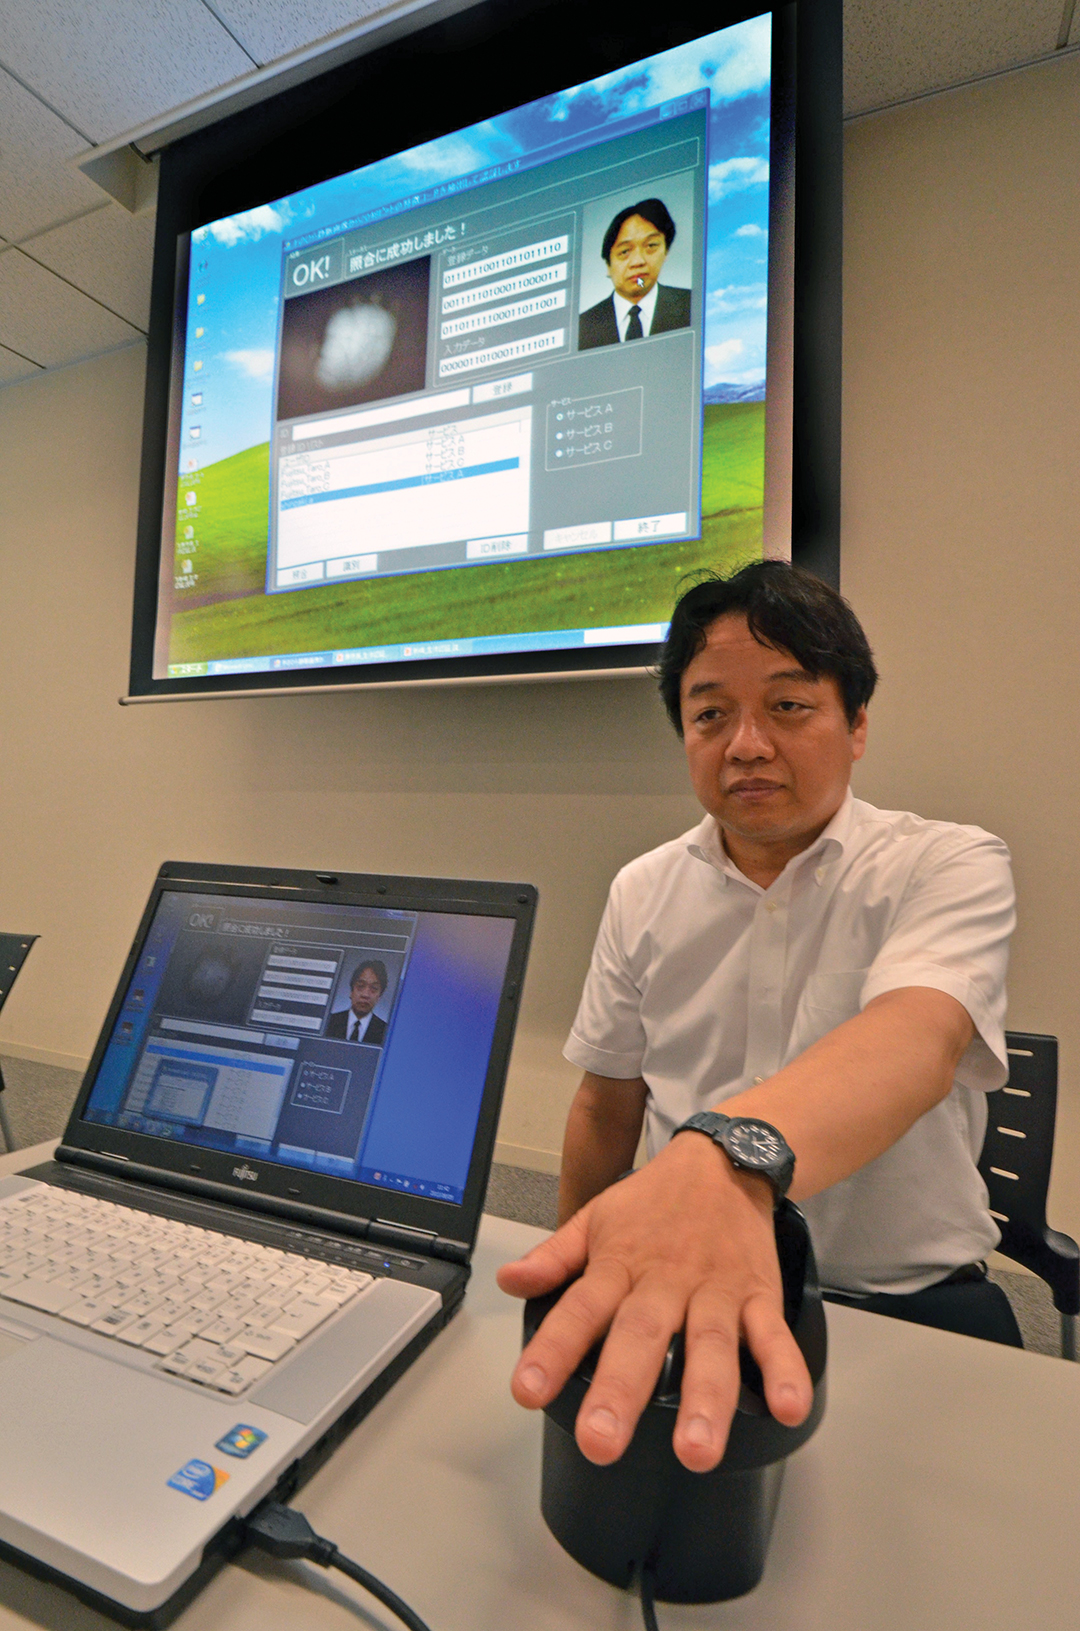 A Japanese researcher demonstrates a new biometric coding technology for extracting and matching the binary codes from palm vein images at Fujitsu's Tokyo headquarters. AFP/GETTY IMAGES